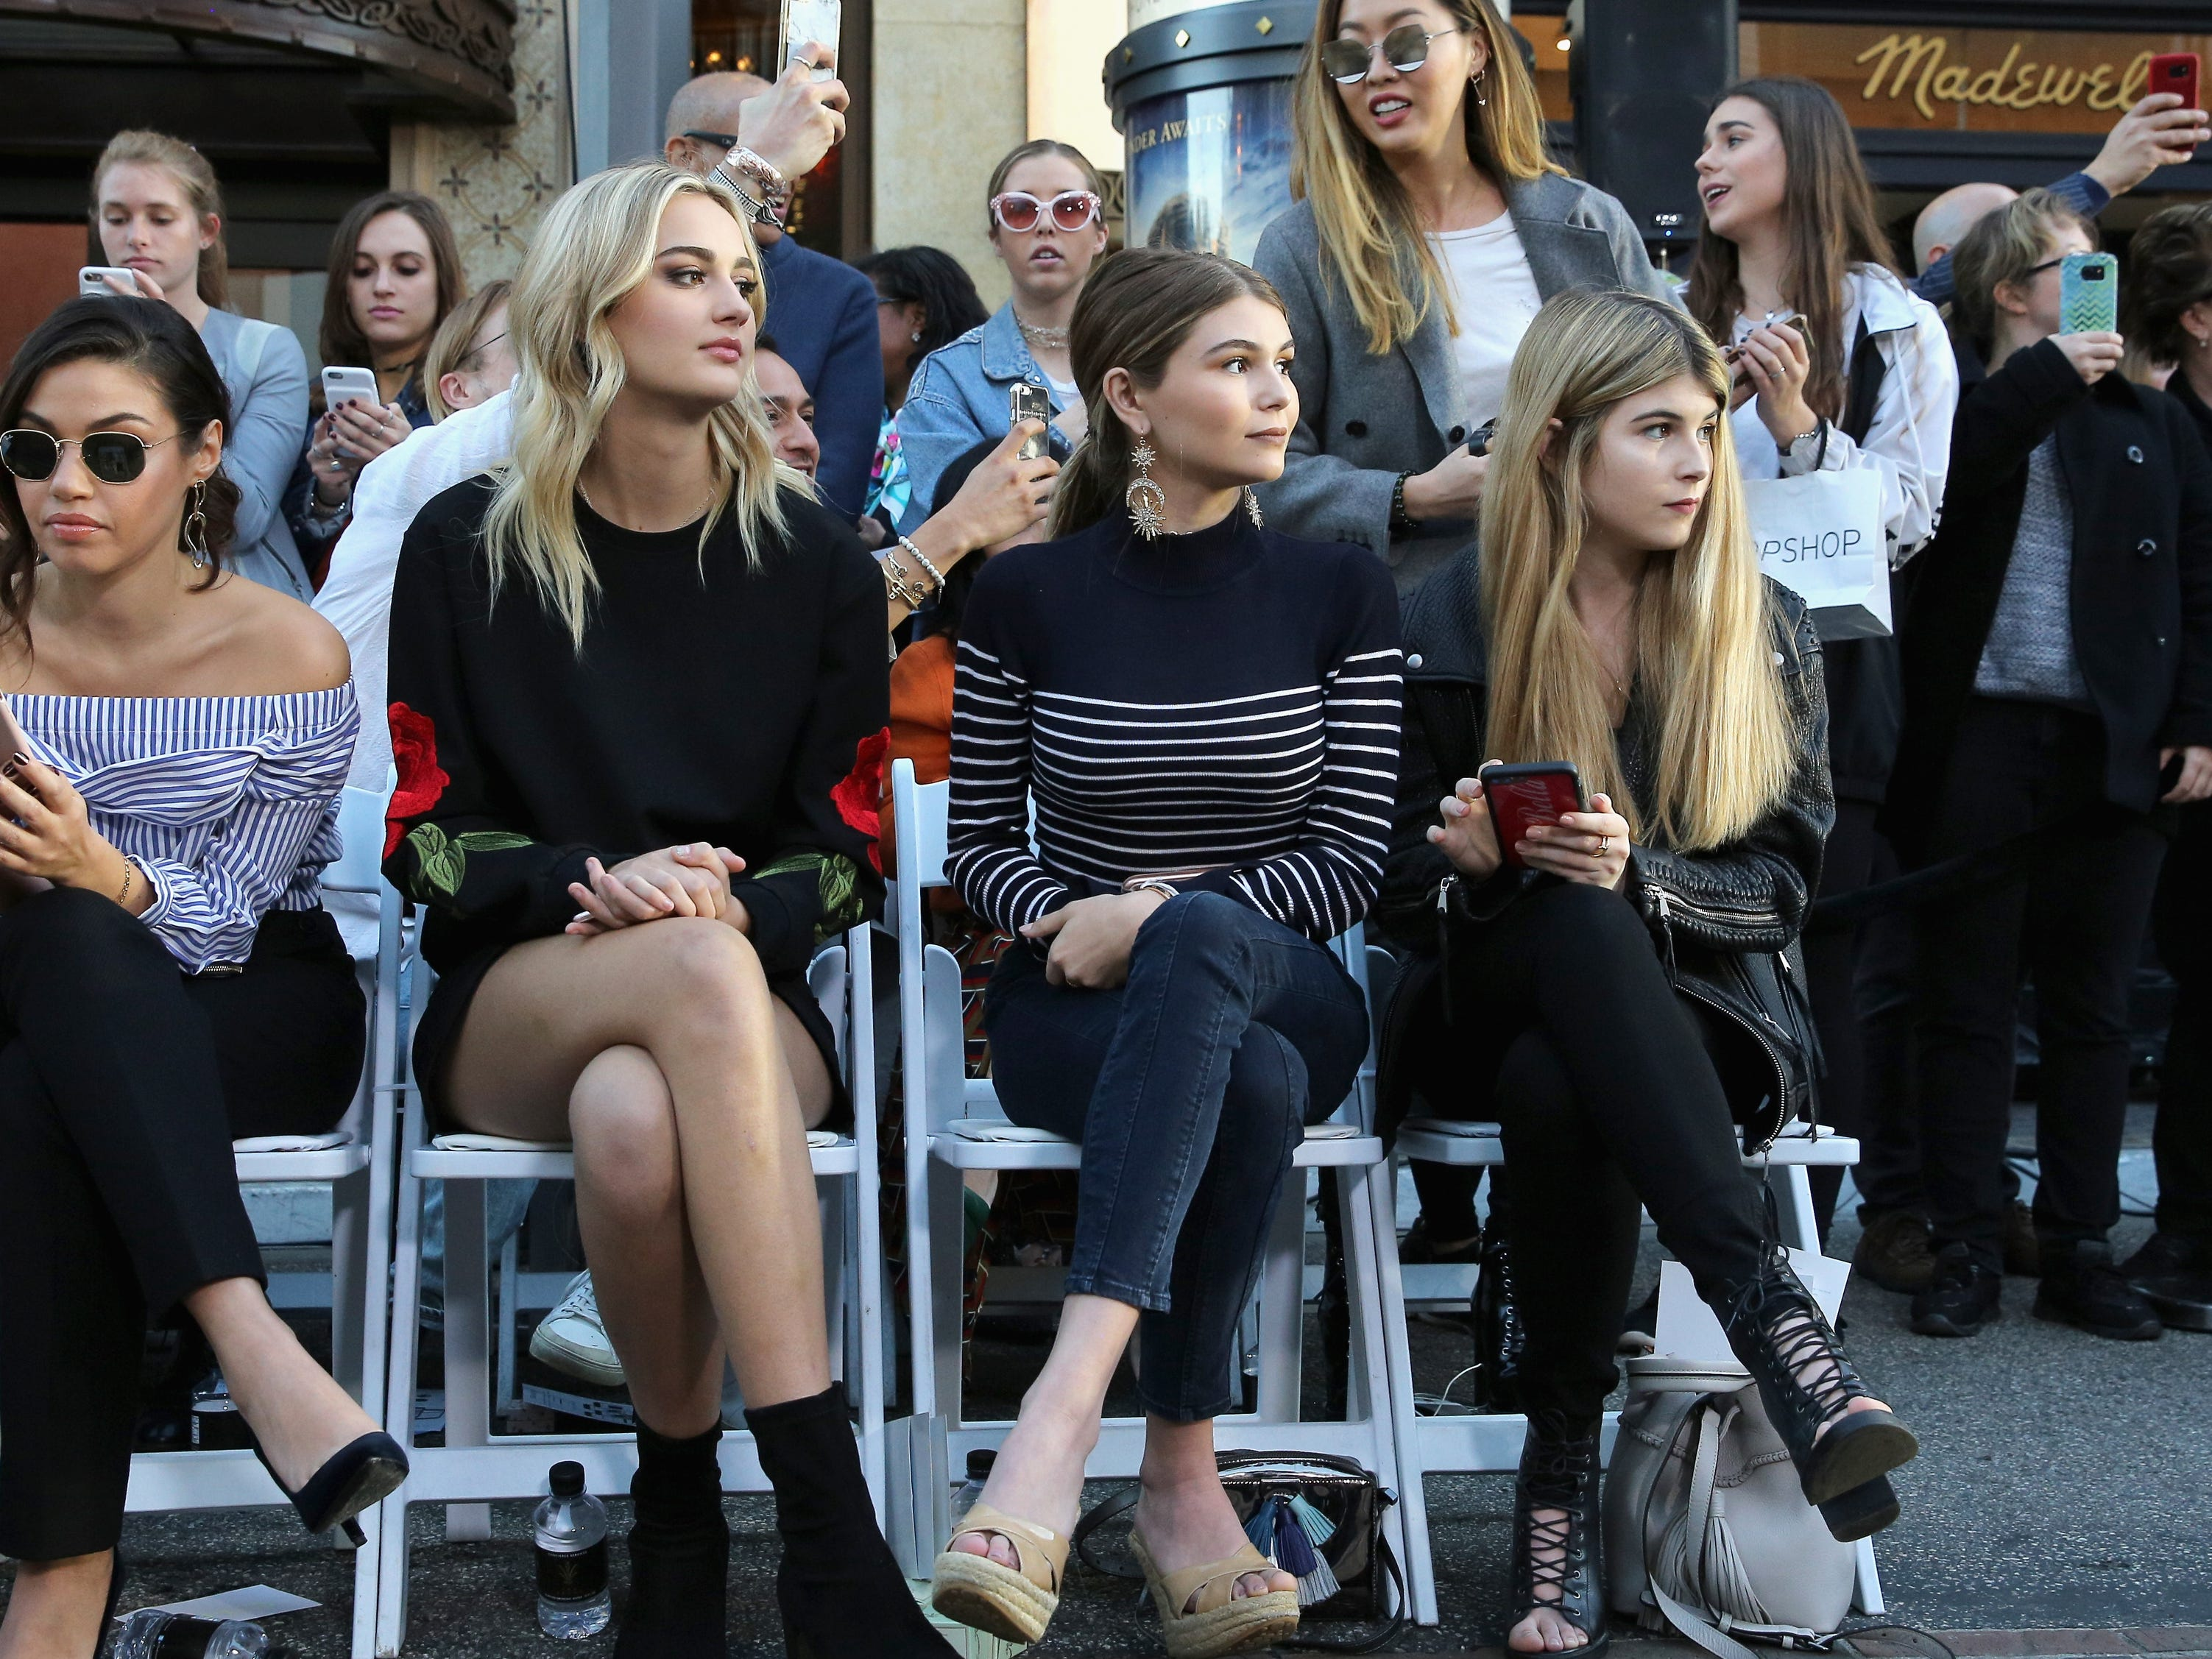 Olivia Giannulli, center, and guests attend designer Rebecca Minkoff's Spring 2017 See Now, Buy Now Fashion Show at The Grove on Feb. 4, 2017, in Los Angeles.